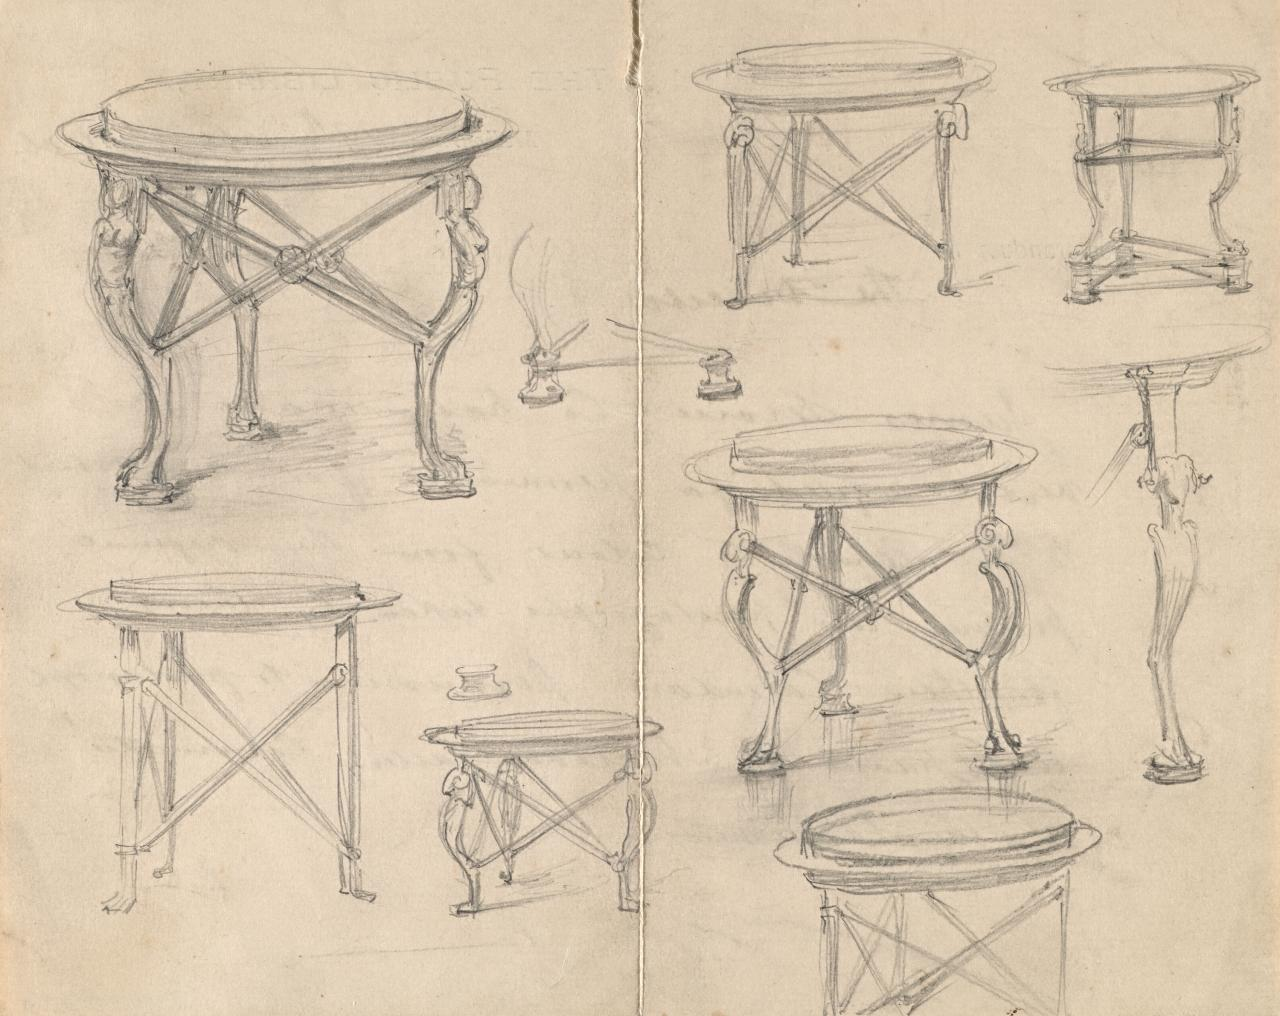 Sketches of a tripod table for Sleep